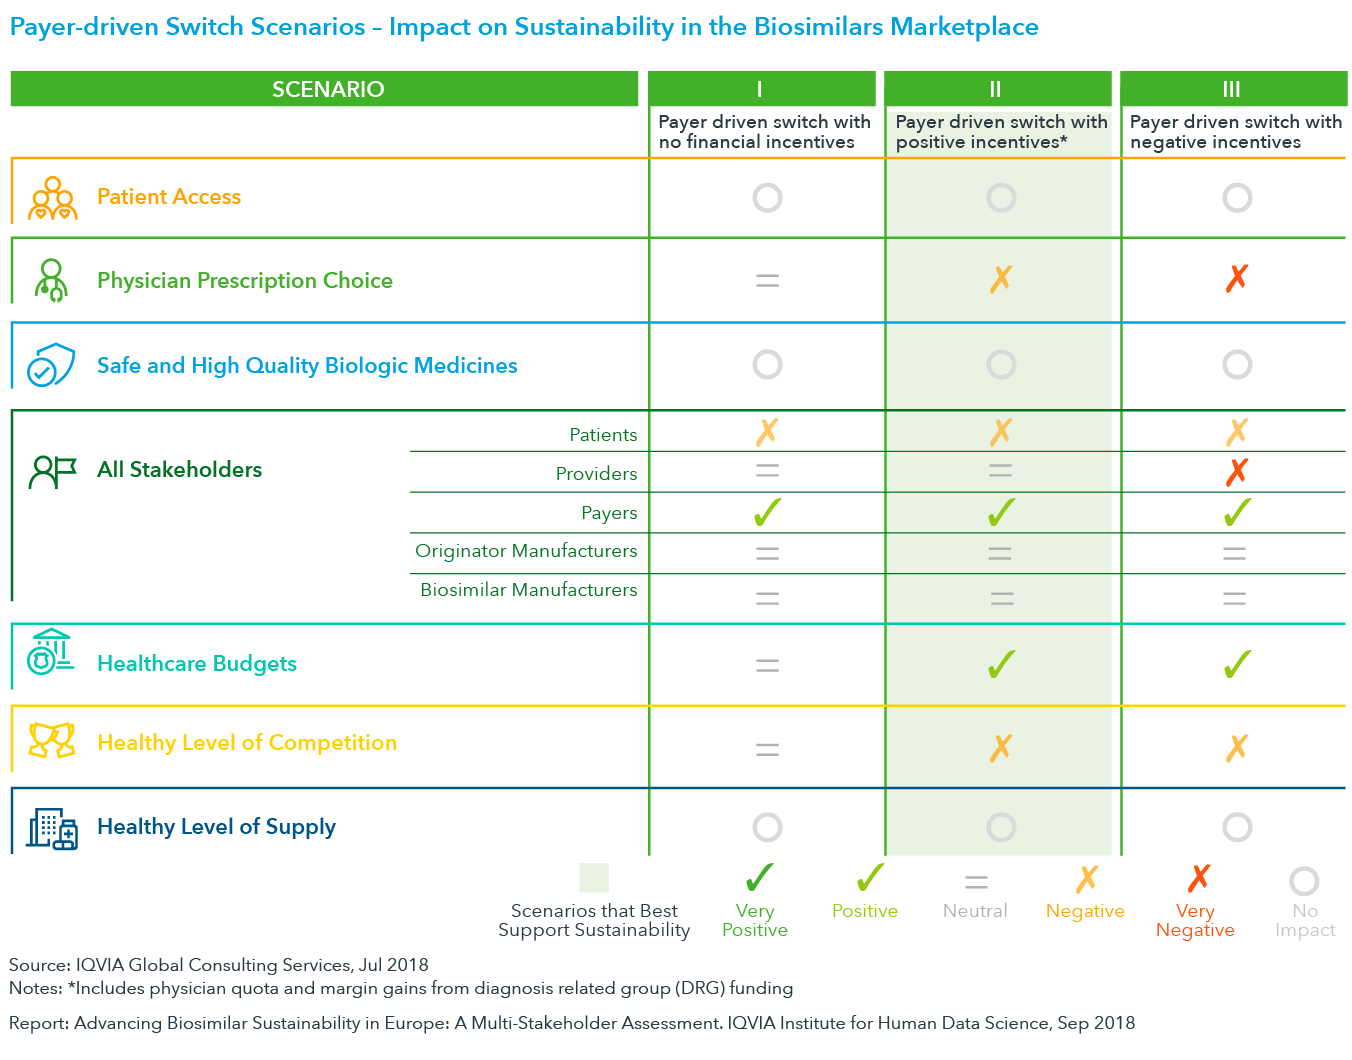 Chart 19: Payer-driven Switch Scenarios – Impact on Sustainability in the Biosimilar Marketplace